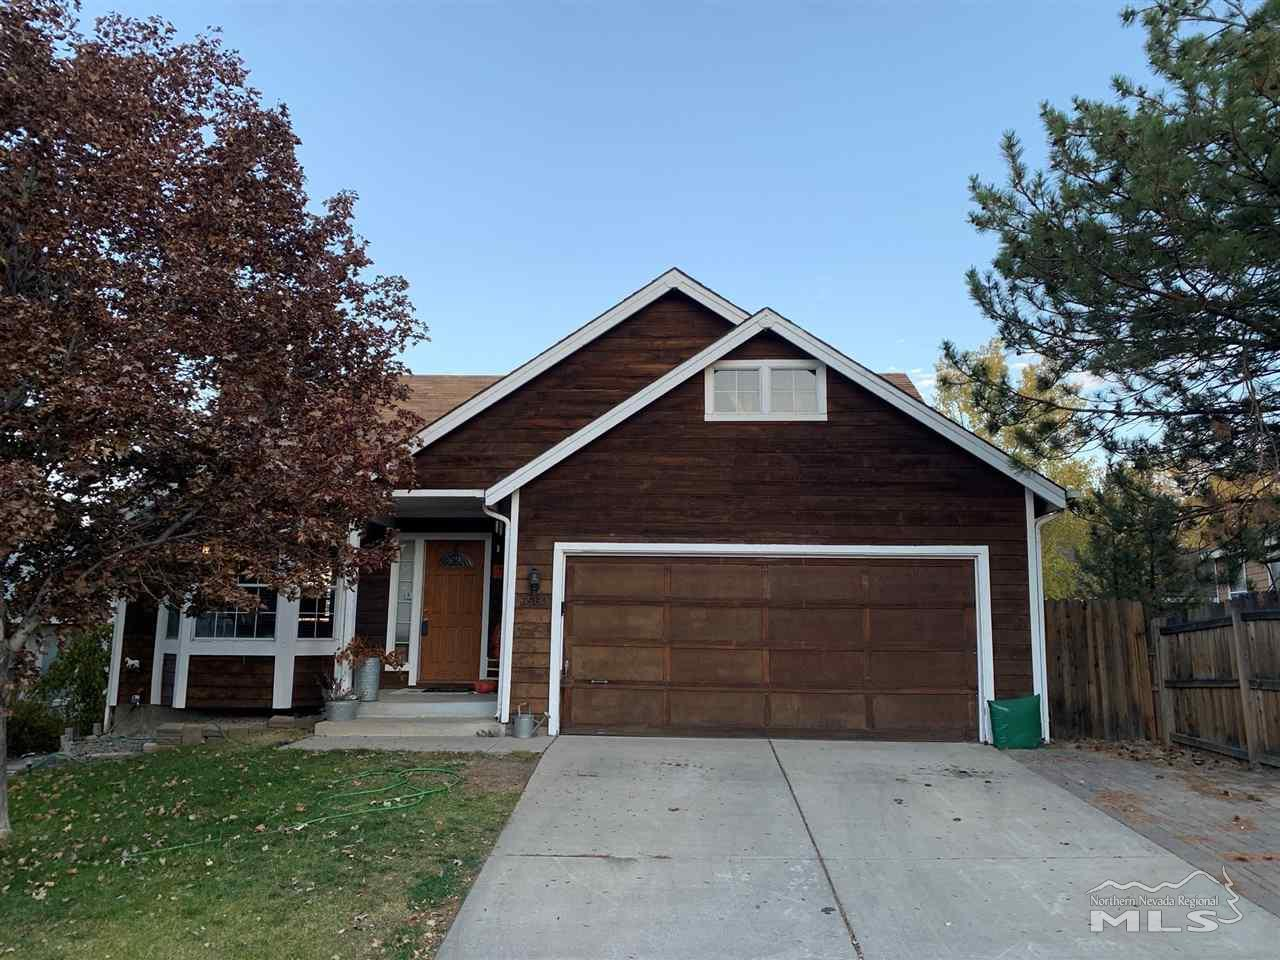 Image for 6560 Ruby Mountain Rd., Reno, NV 89506